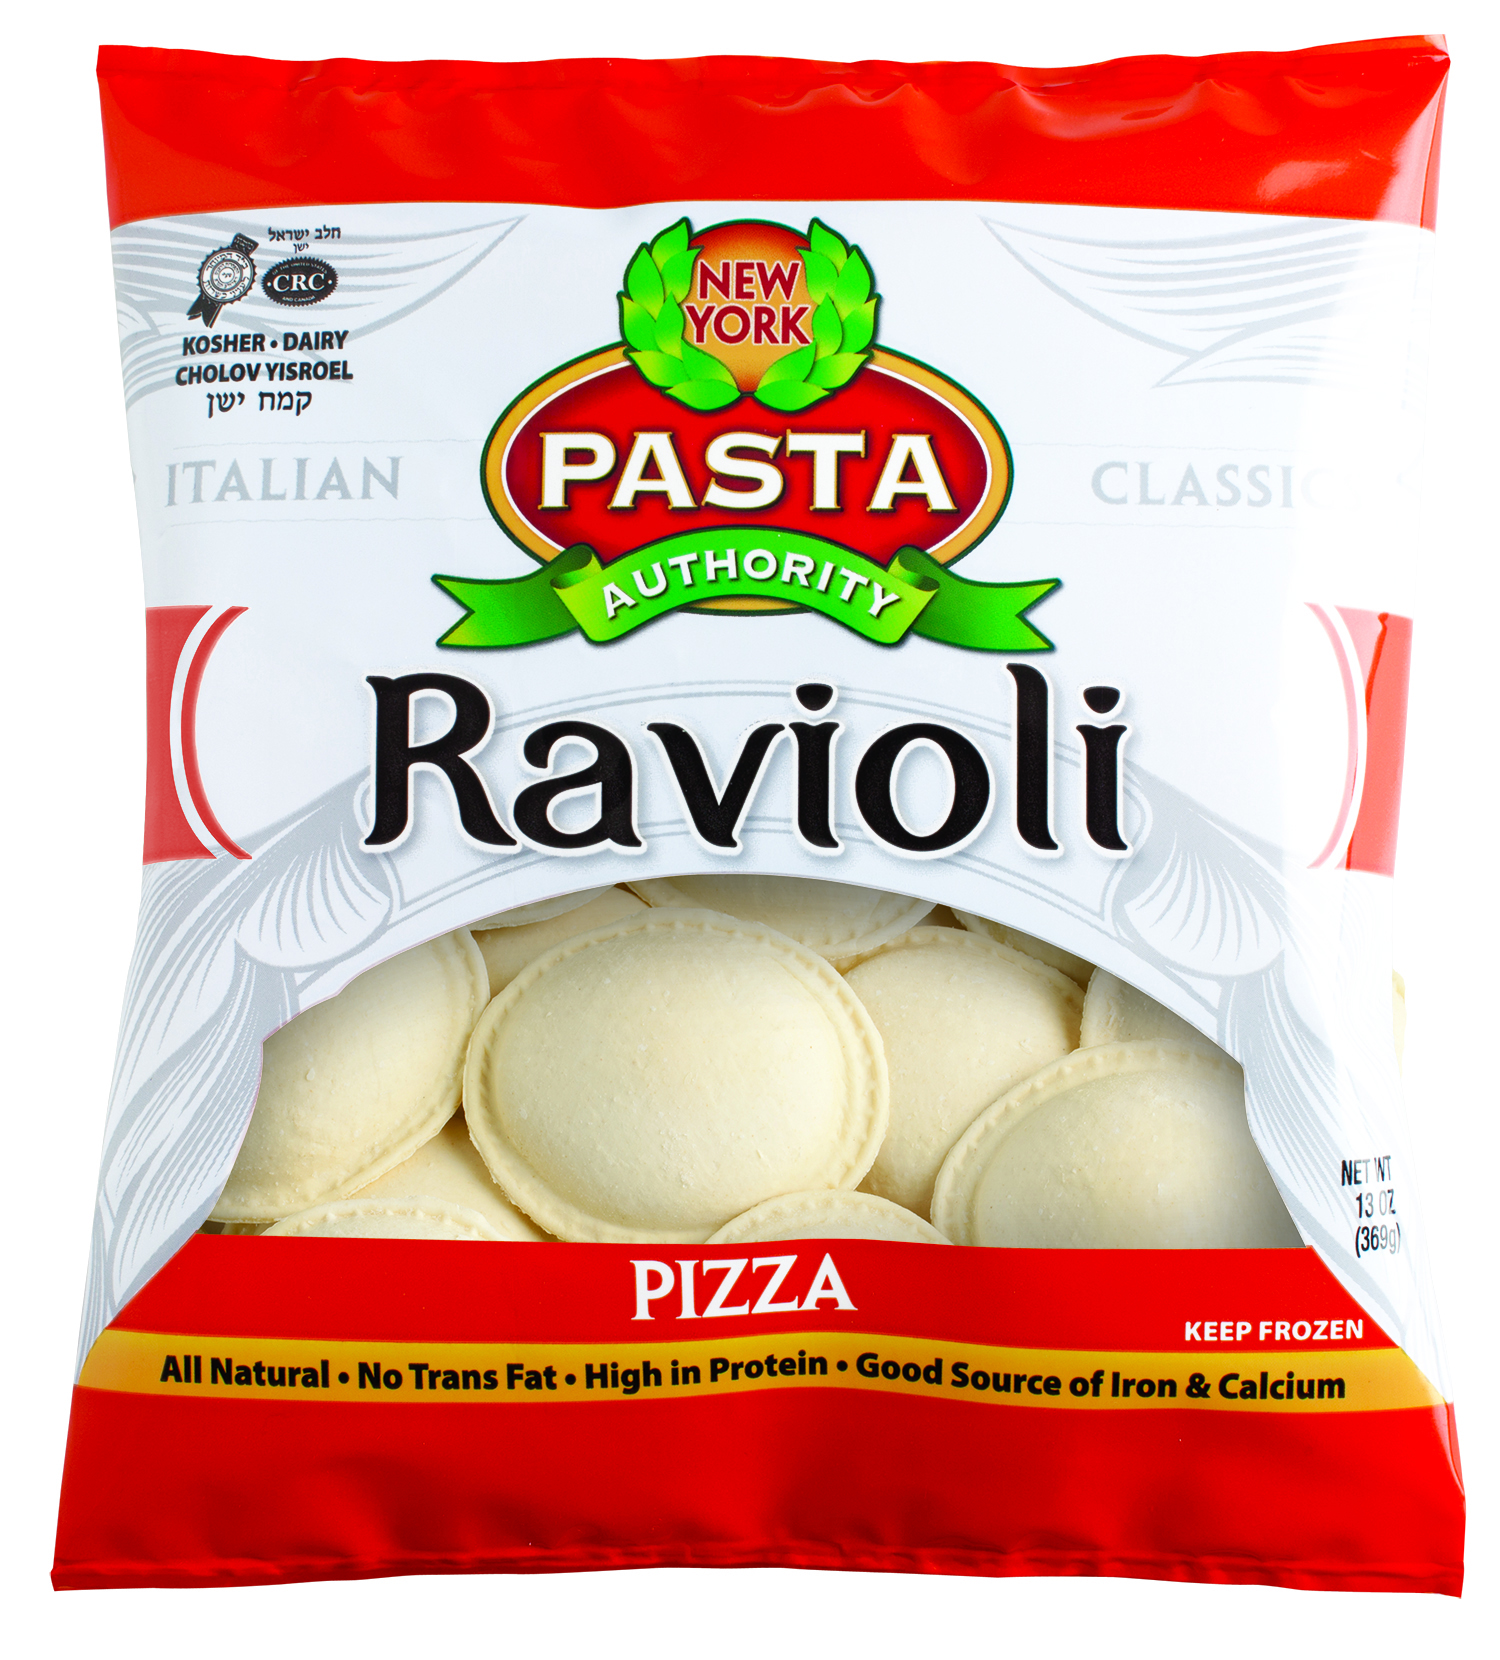 Bag - Ravioli - Pizza